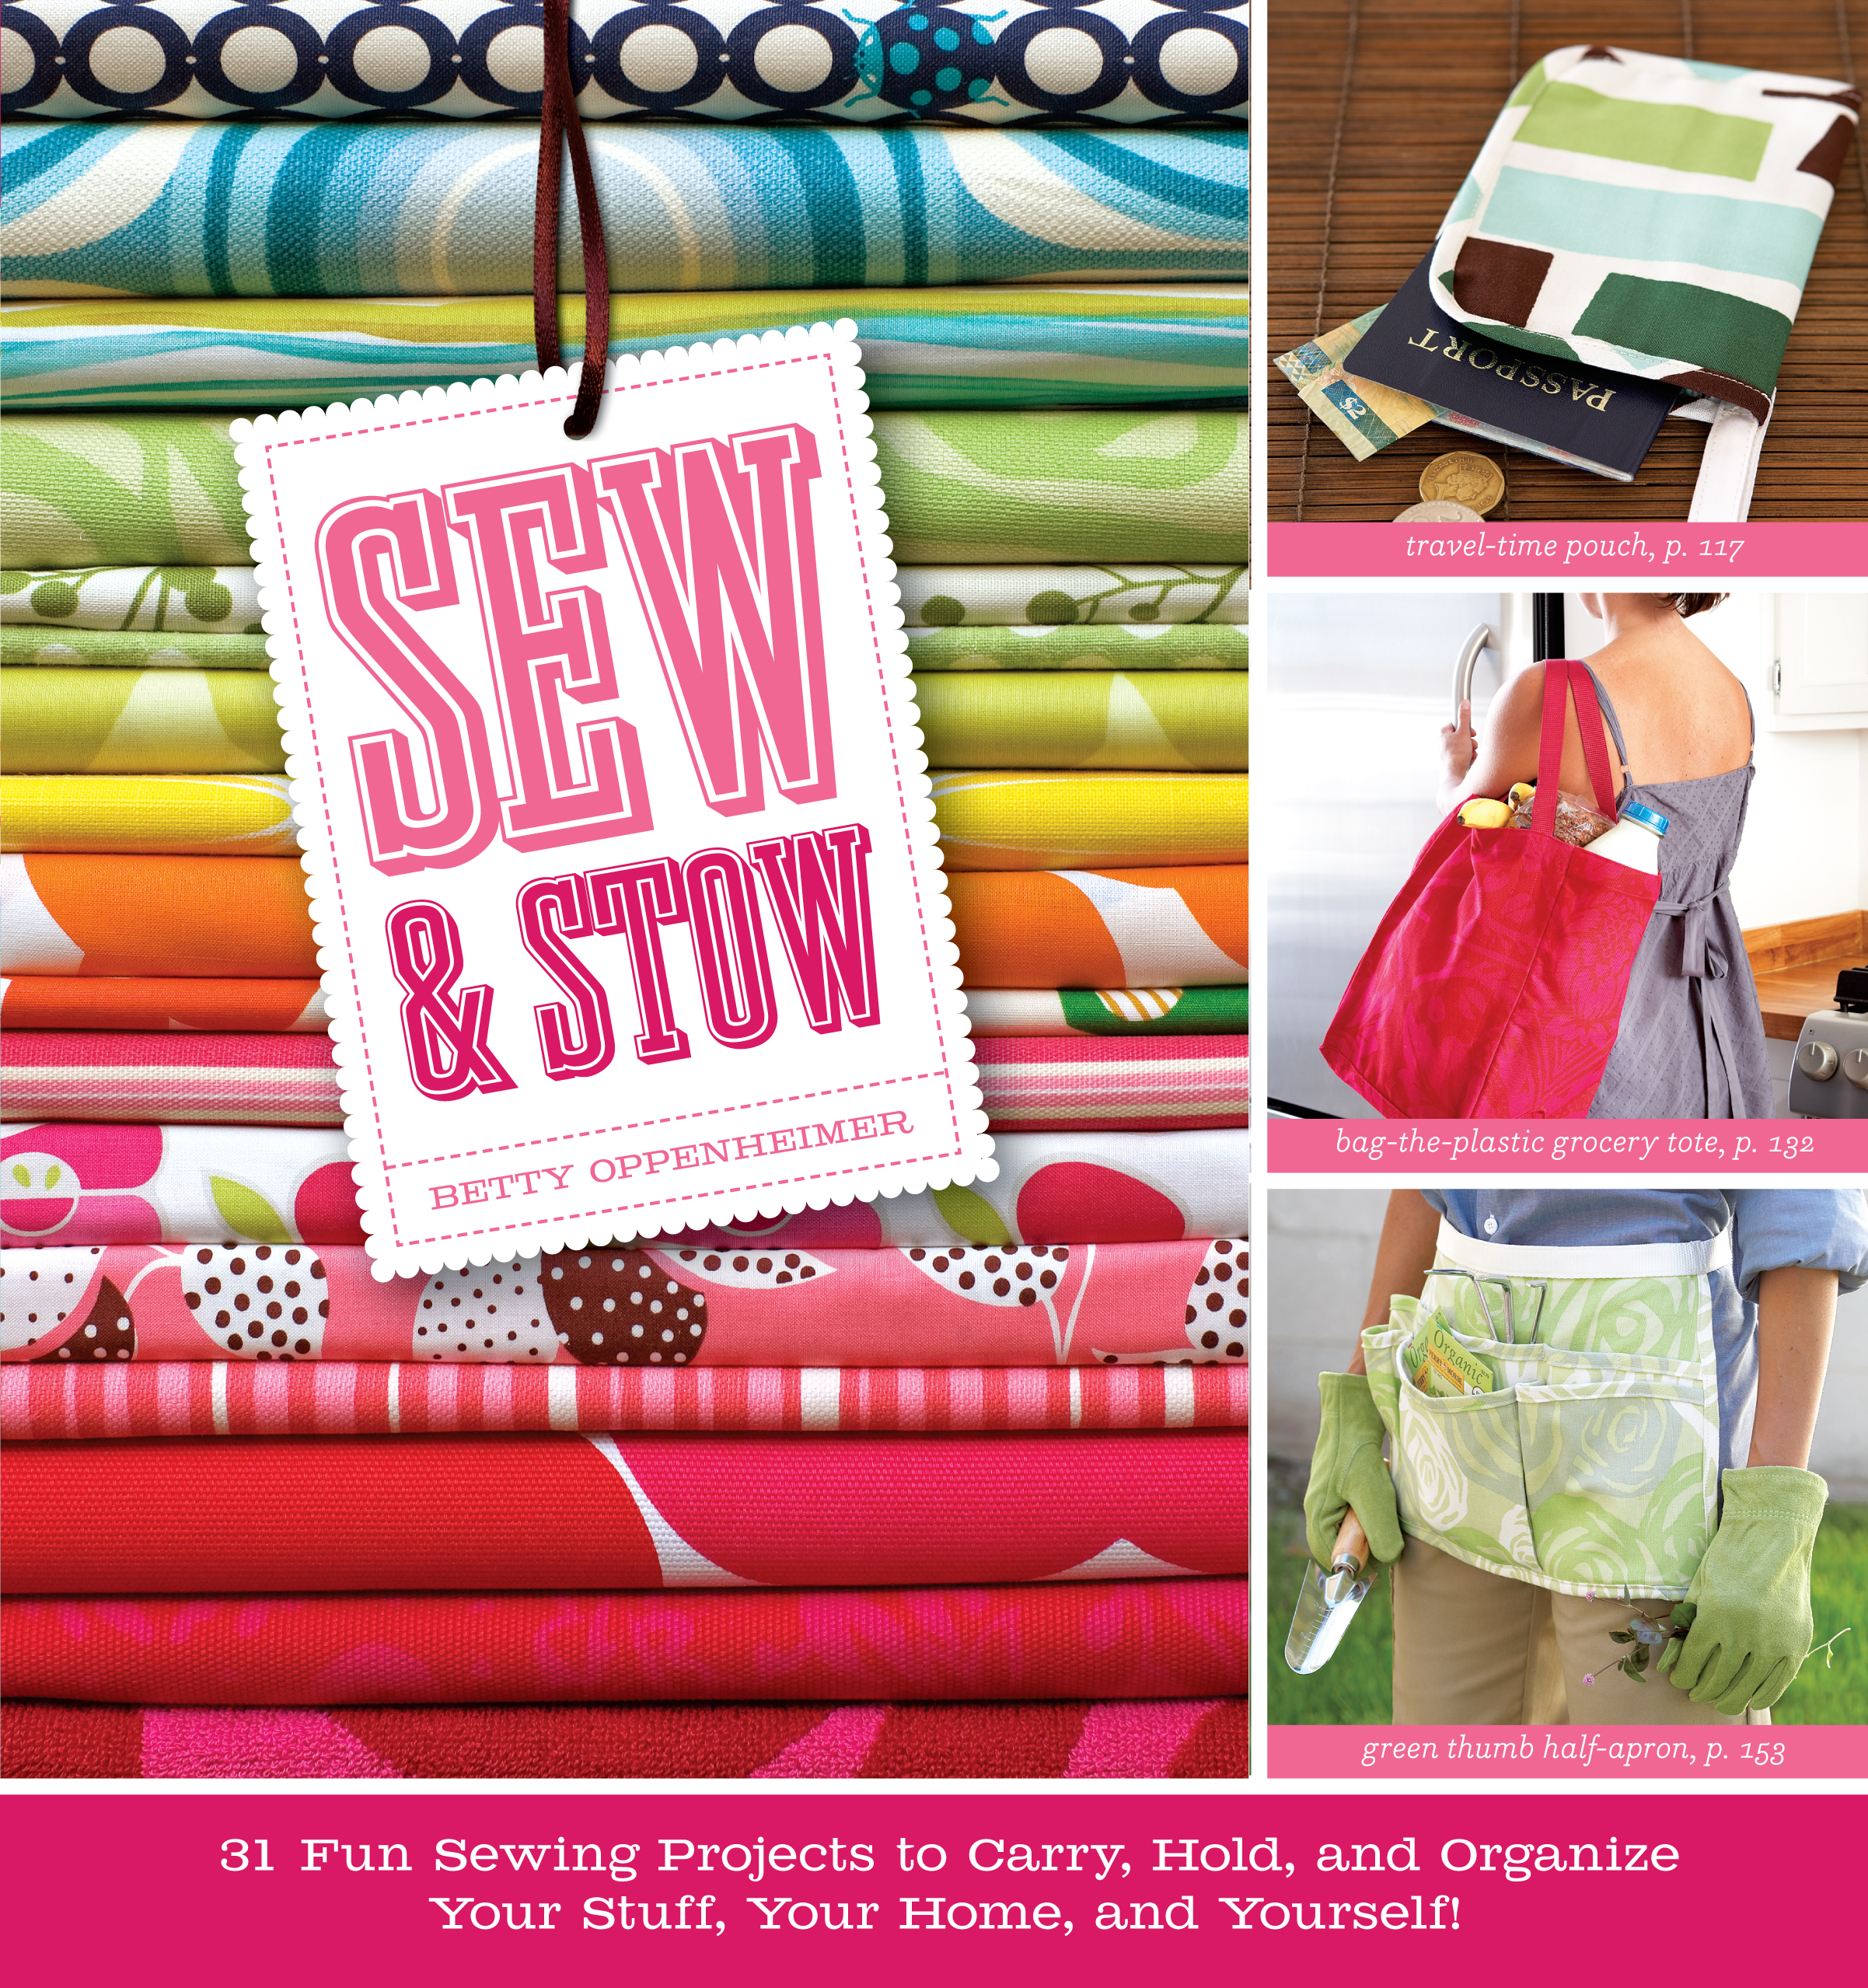 Sew & Stow 31 Fun Sewing Projects to Carry, Hold, and Organize Your Stuff, Your Home, and Yourself! - Betty Oppenheimer